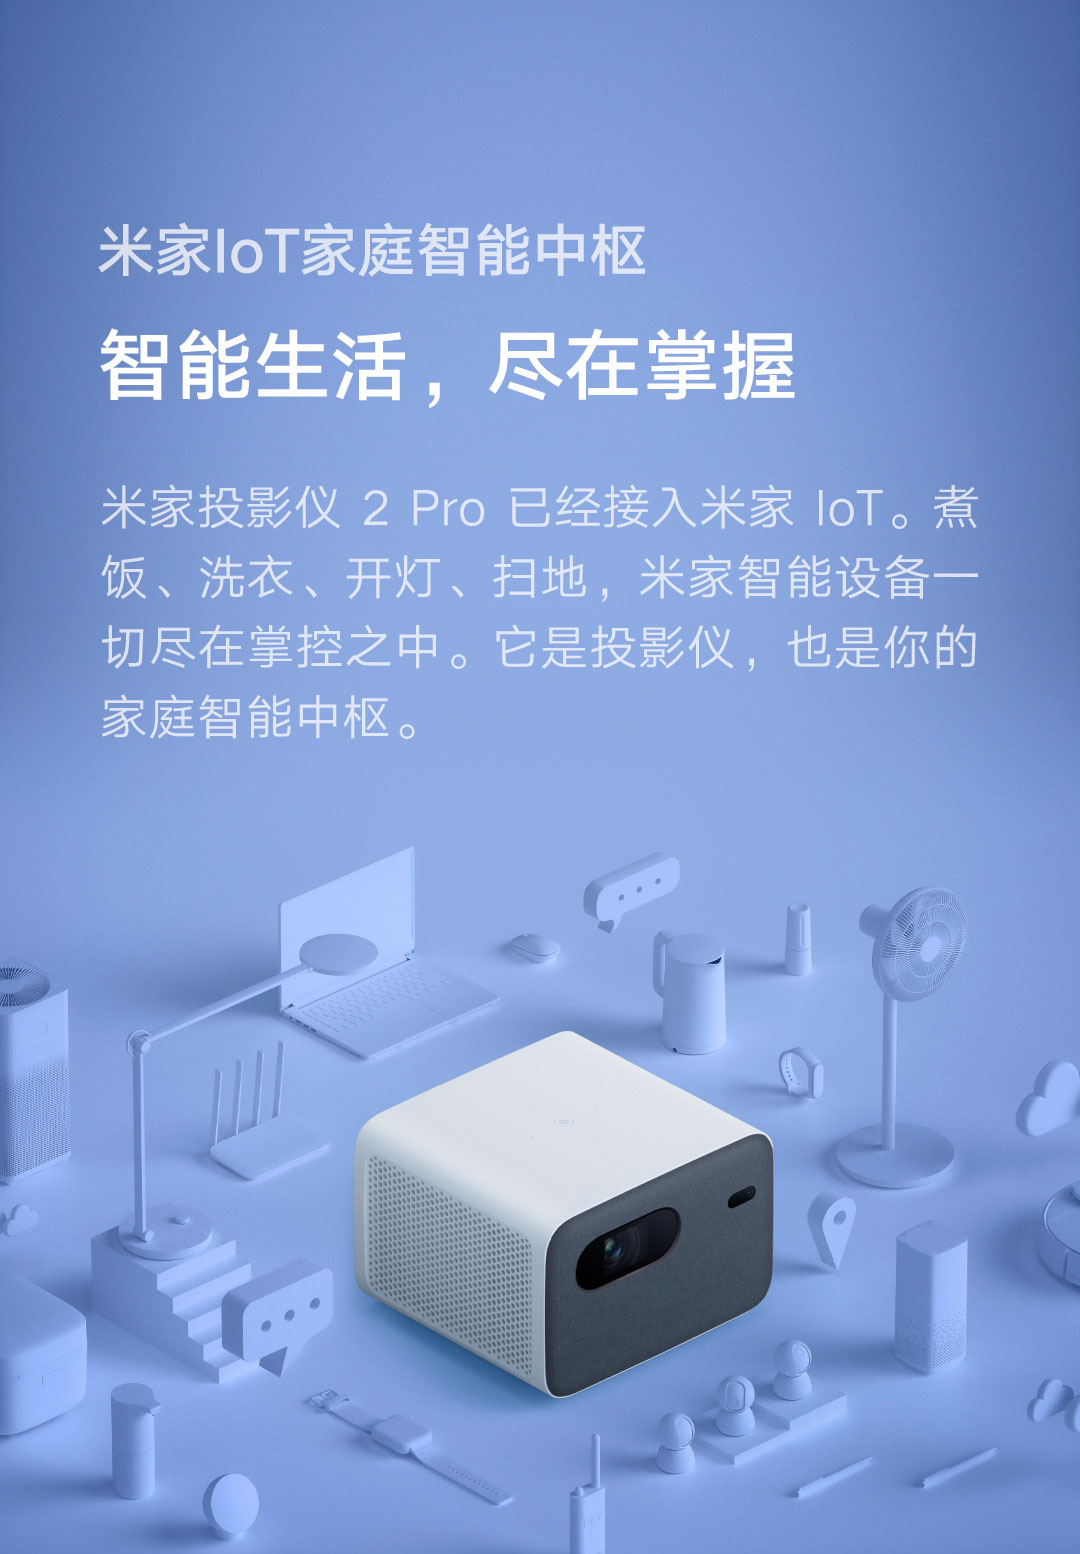 Xiaomi Mijia 2 projector, now with HDR10 + and Amlogic T972 processor